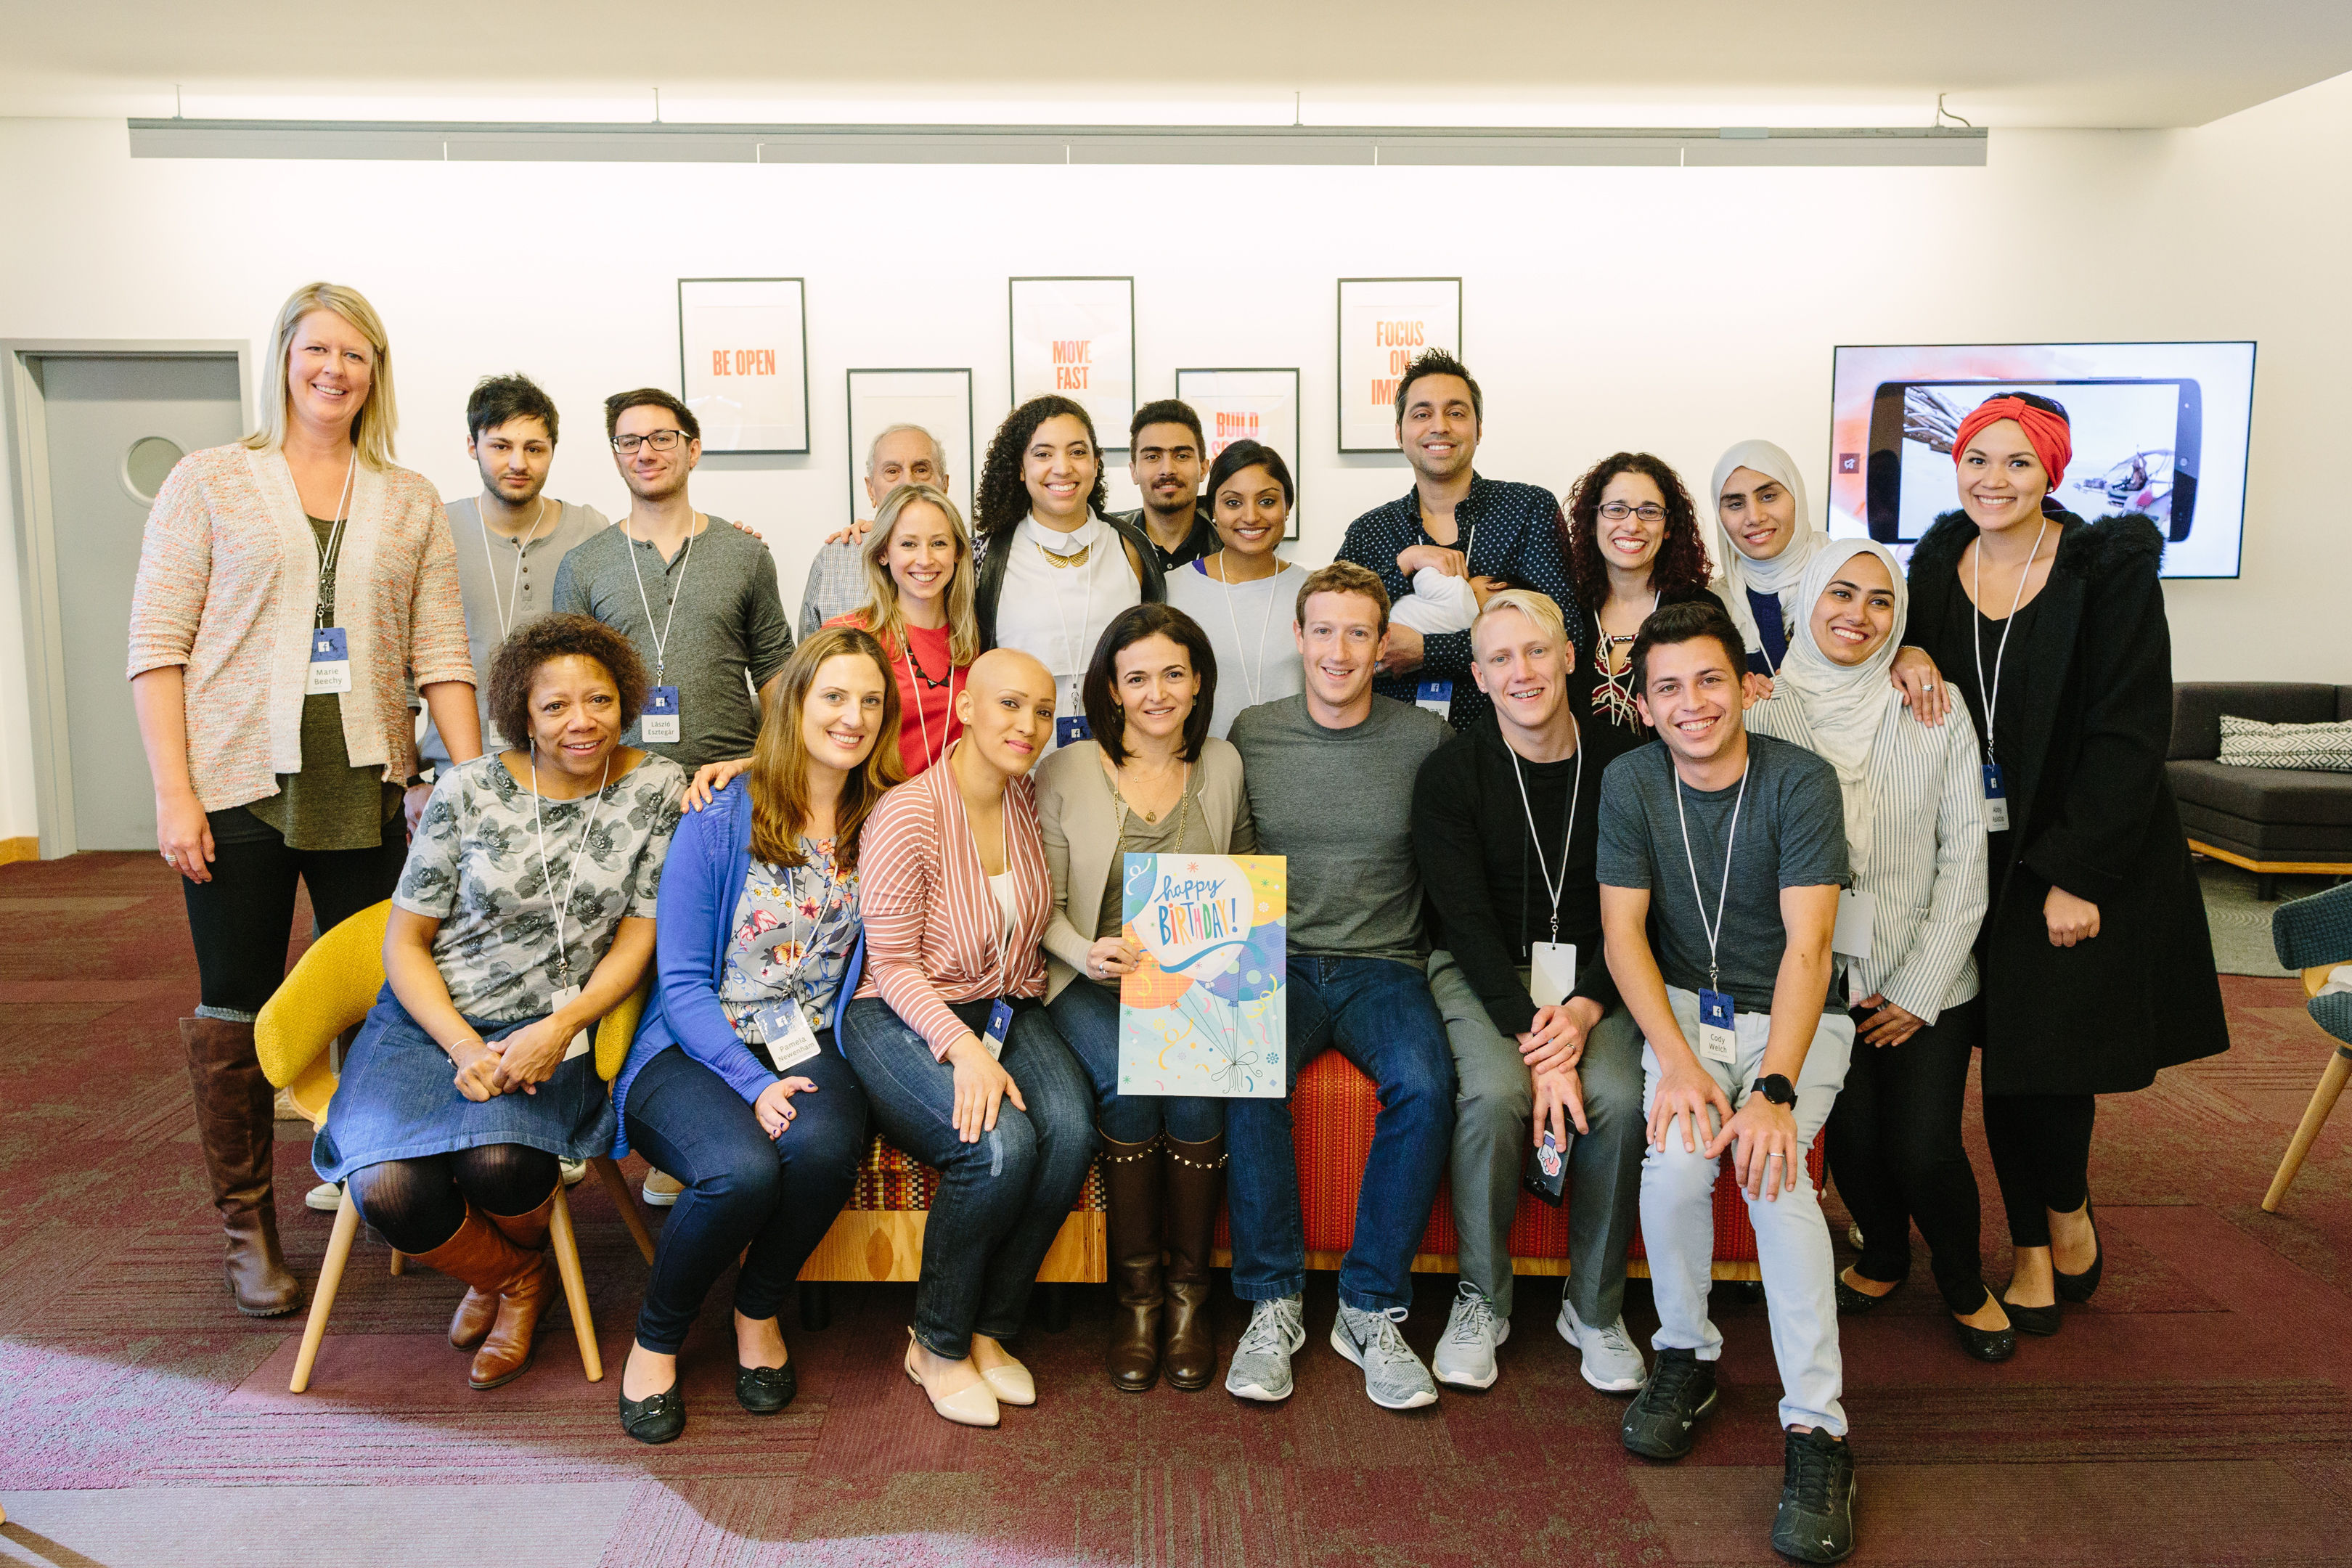 Sheryl Sandberg (centre front) with Facebook CEO Mark Zuckerberg and team.